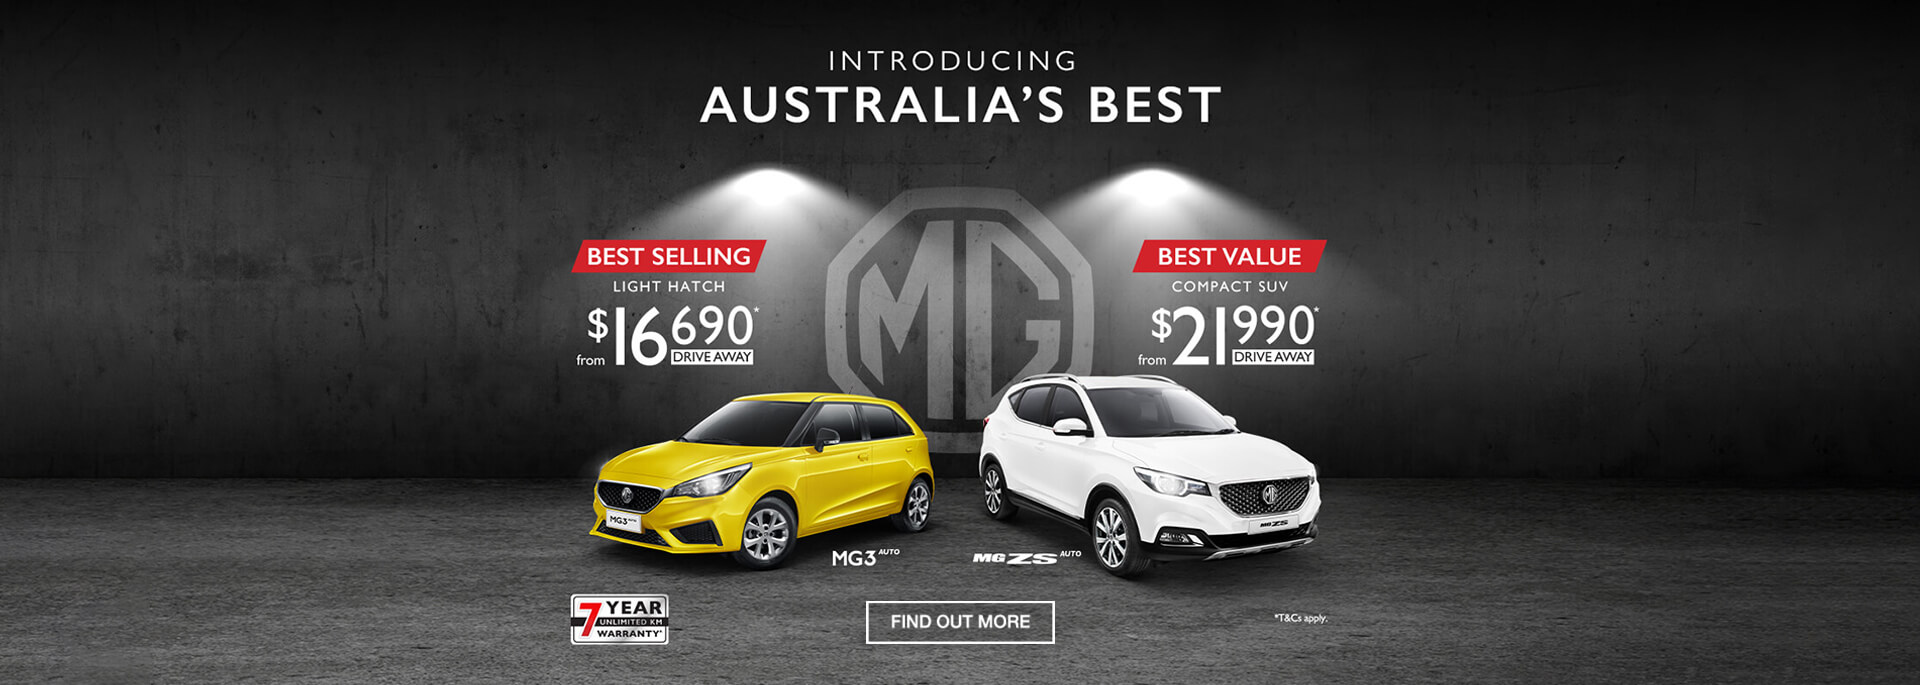 Australia's Best at MG